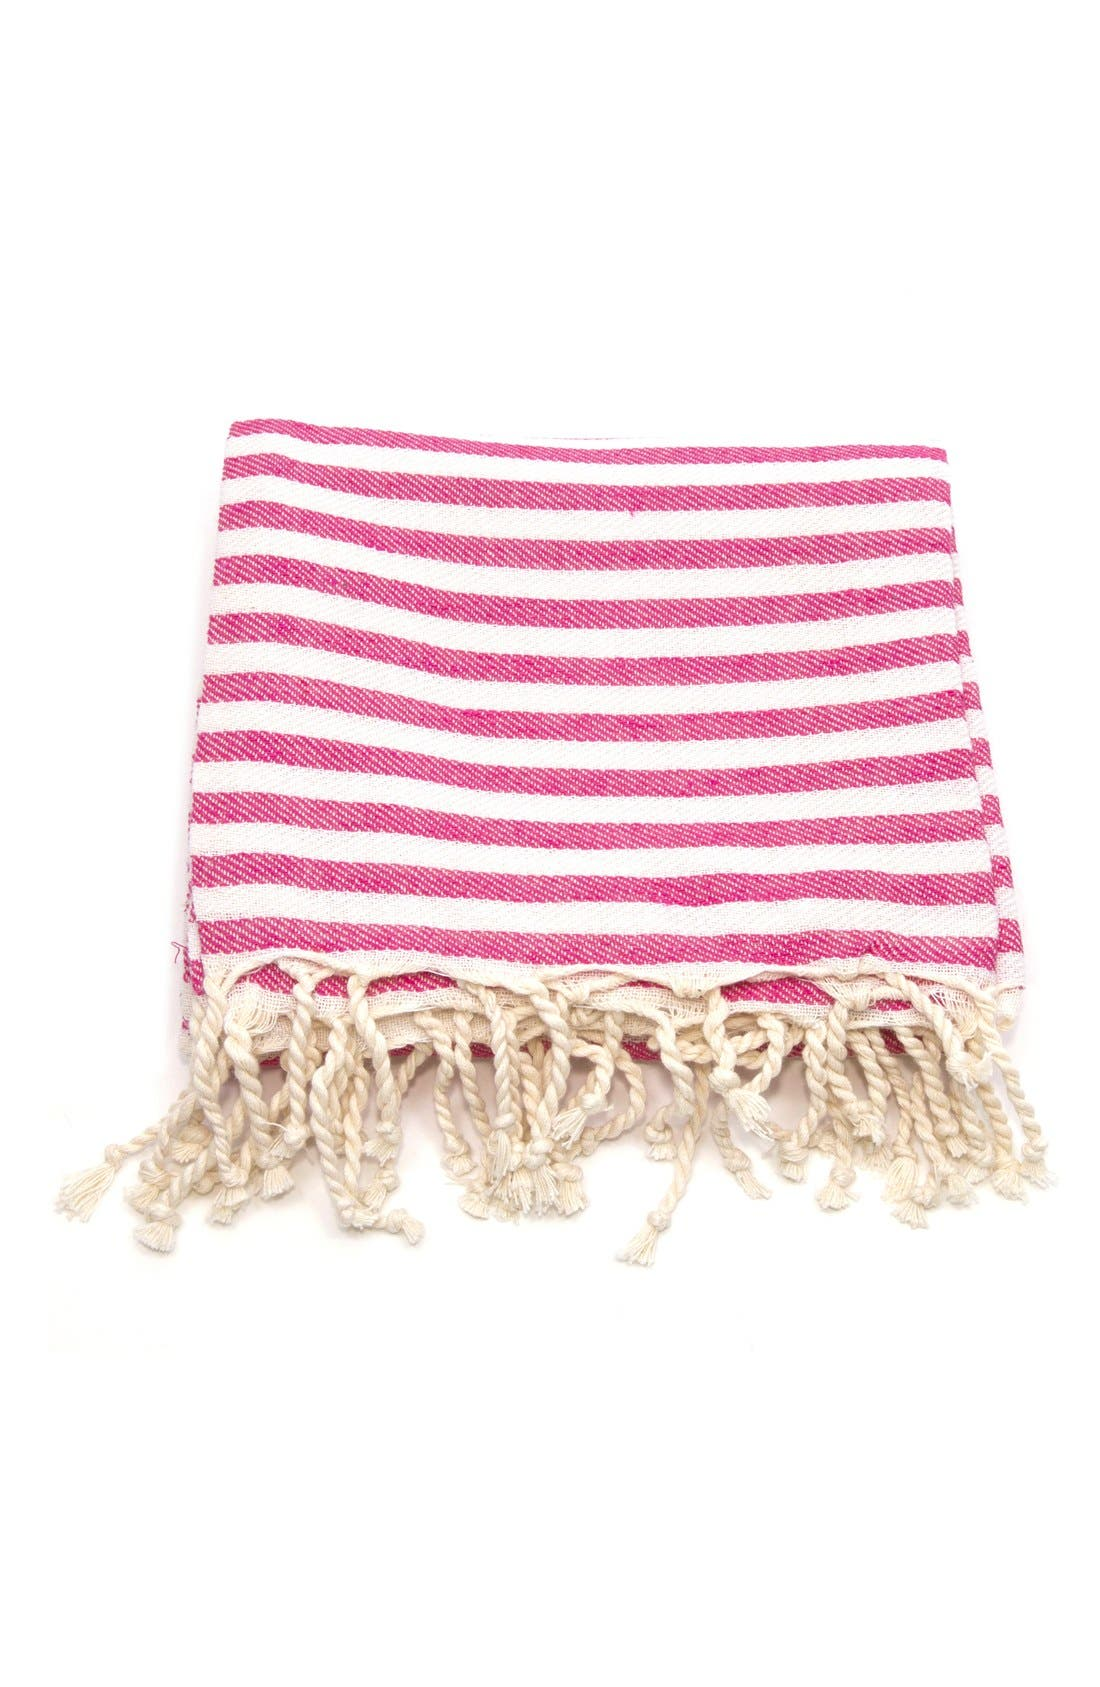 Alternate Image 3  - Linum Home Textiles 'Fun in the Sun' Turkish Pestemal Towel